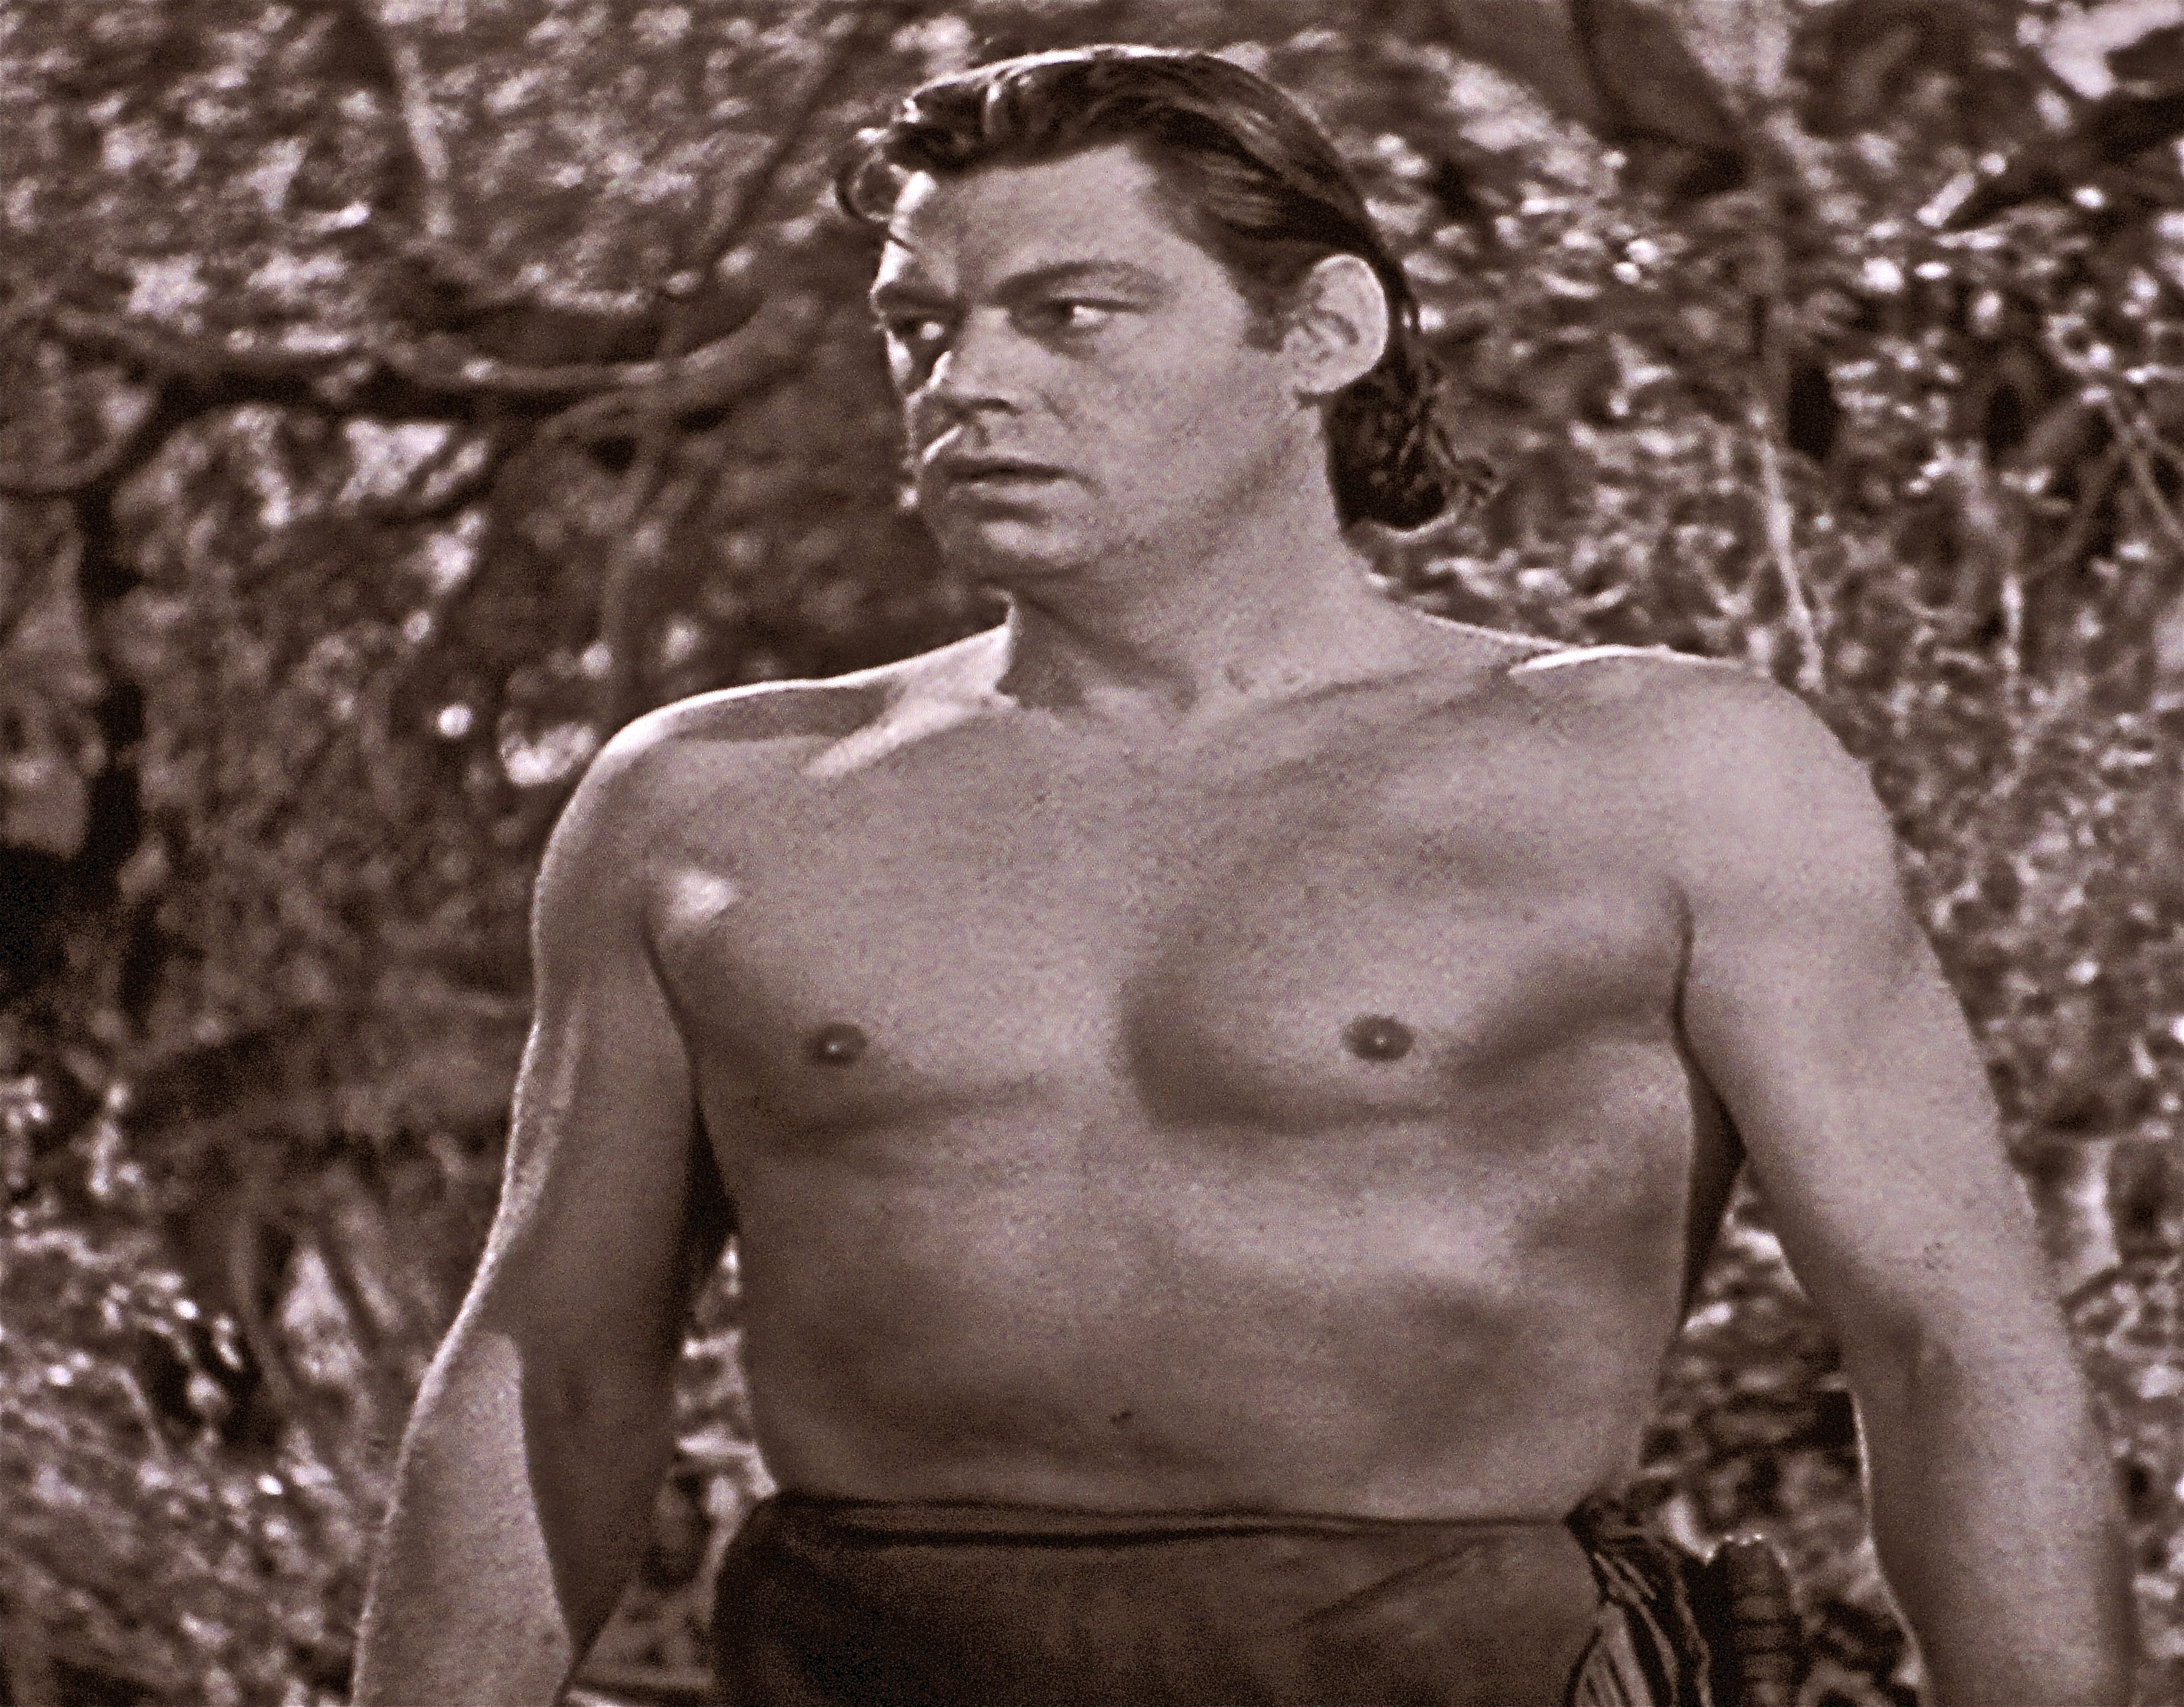 johnny weissmuller olympicsjohnny weissmuller yell, johnny weissmuller filmography, johnny weissmuller tarzan call, johnny weissmuller wikipedia, johnny weissmuller cocktail, johnny weissmuller jr, johnny weissmuller tarzan yell, johnny weissmuller biography, johnny weissmuller swimming, johnny weissmuller jr american graffiti, johnny weissmuller tarzan film online, johnny weissmuller tarzan film, johnny weissmuller tarzan movies, johnny weissmuller pools, johnny weissmuller olympics, johnny weissmuller movies, johnny weissmuller house, johnny weissmuller pool liners, johnny weissmuller muerte, johnny weissmuller net worth